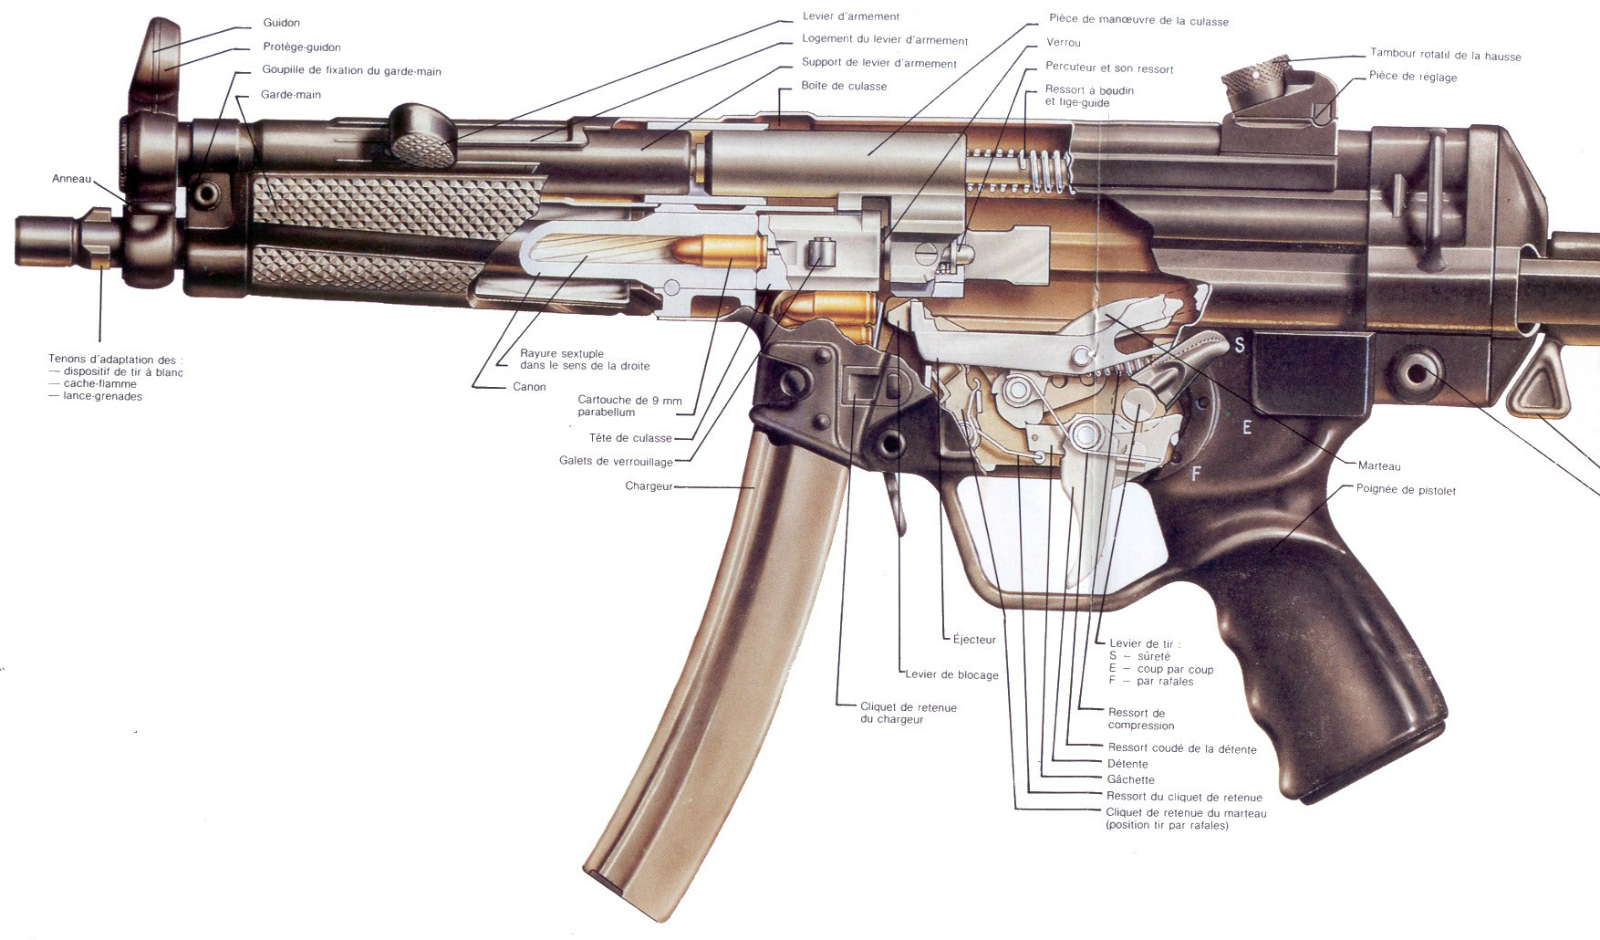 http://2.bp.blogspot.com/-xOq4nEvP5Uk/TmtHYvgKyuI/AAAAAAAAC6Y/dRRfSO2DC2o/s1600/mp5_diagram_technical_machine_gun_www.Vvallpaper.net.jpg